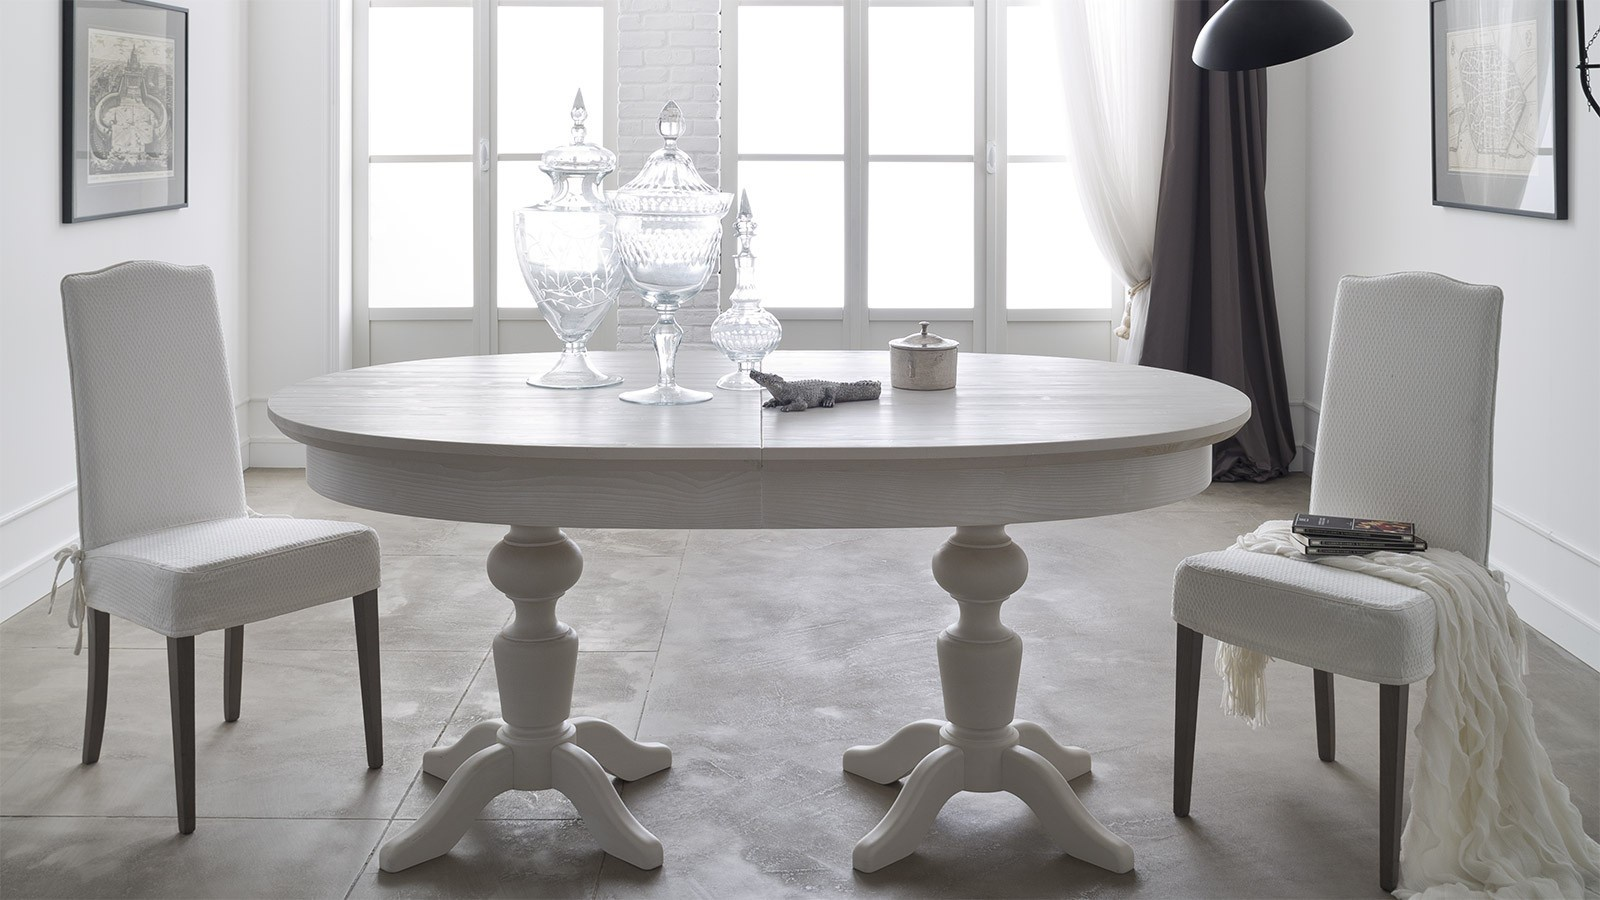 Oval Table Wooden Ovale In A Classic Style Callesella Luxury